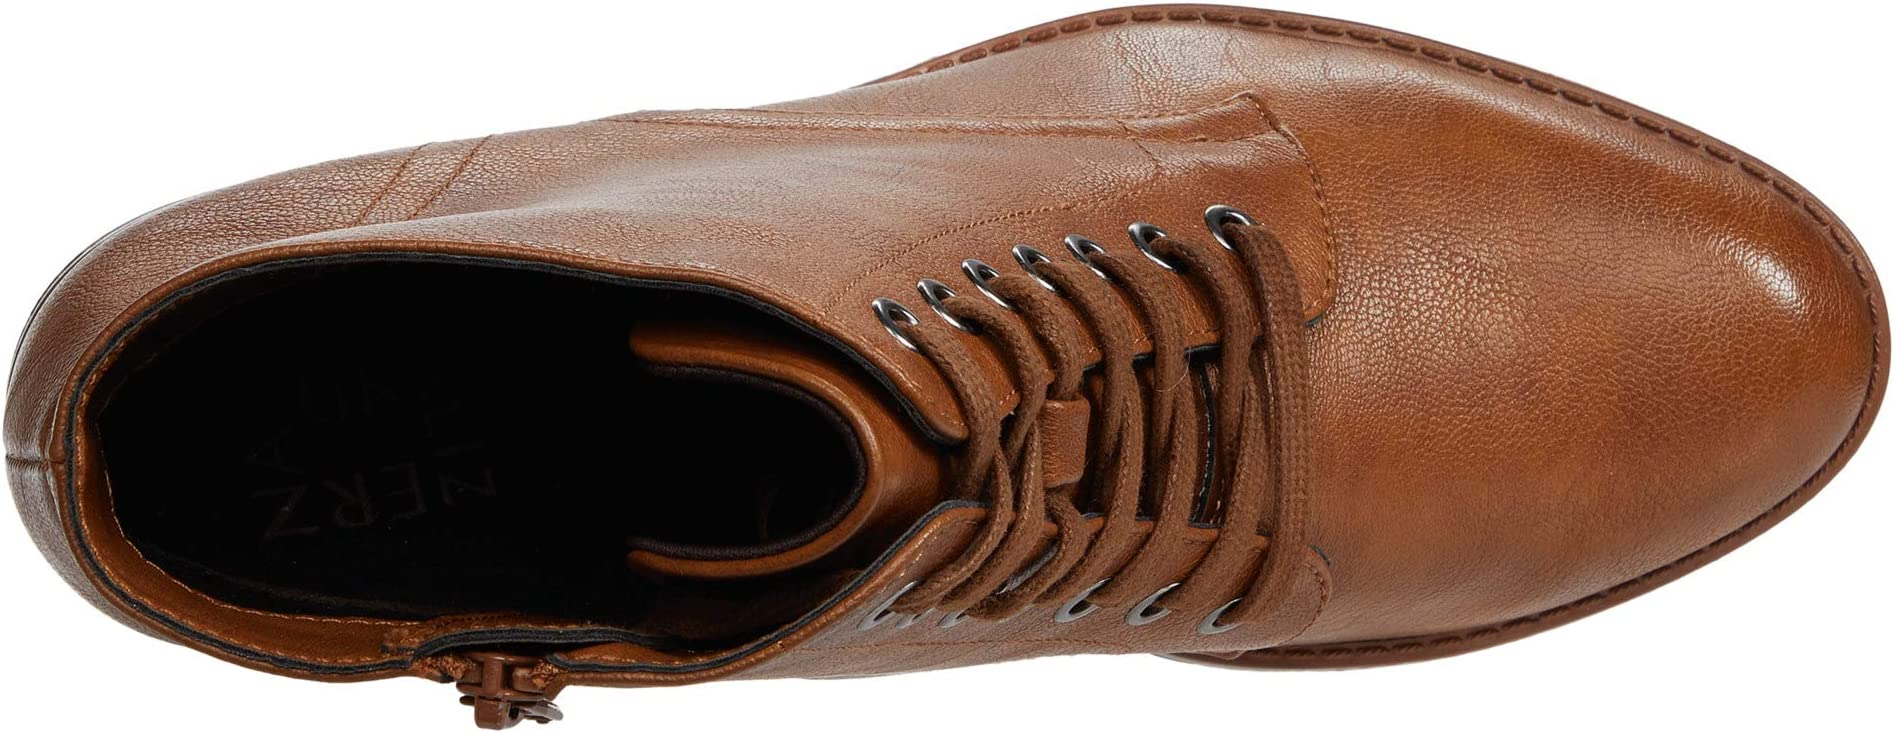 Naturalizer Madalynn   Women's shoes   2020 Newest